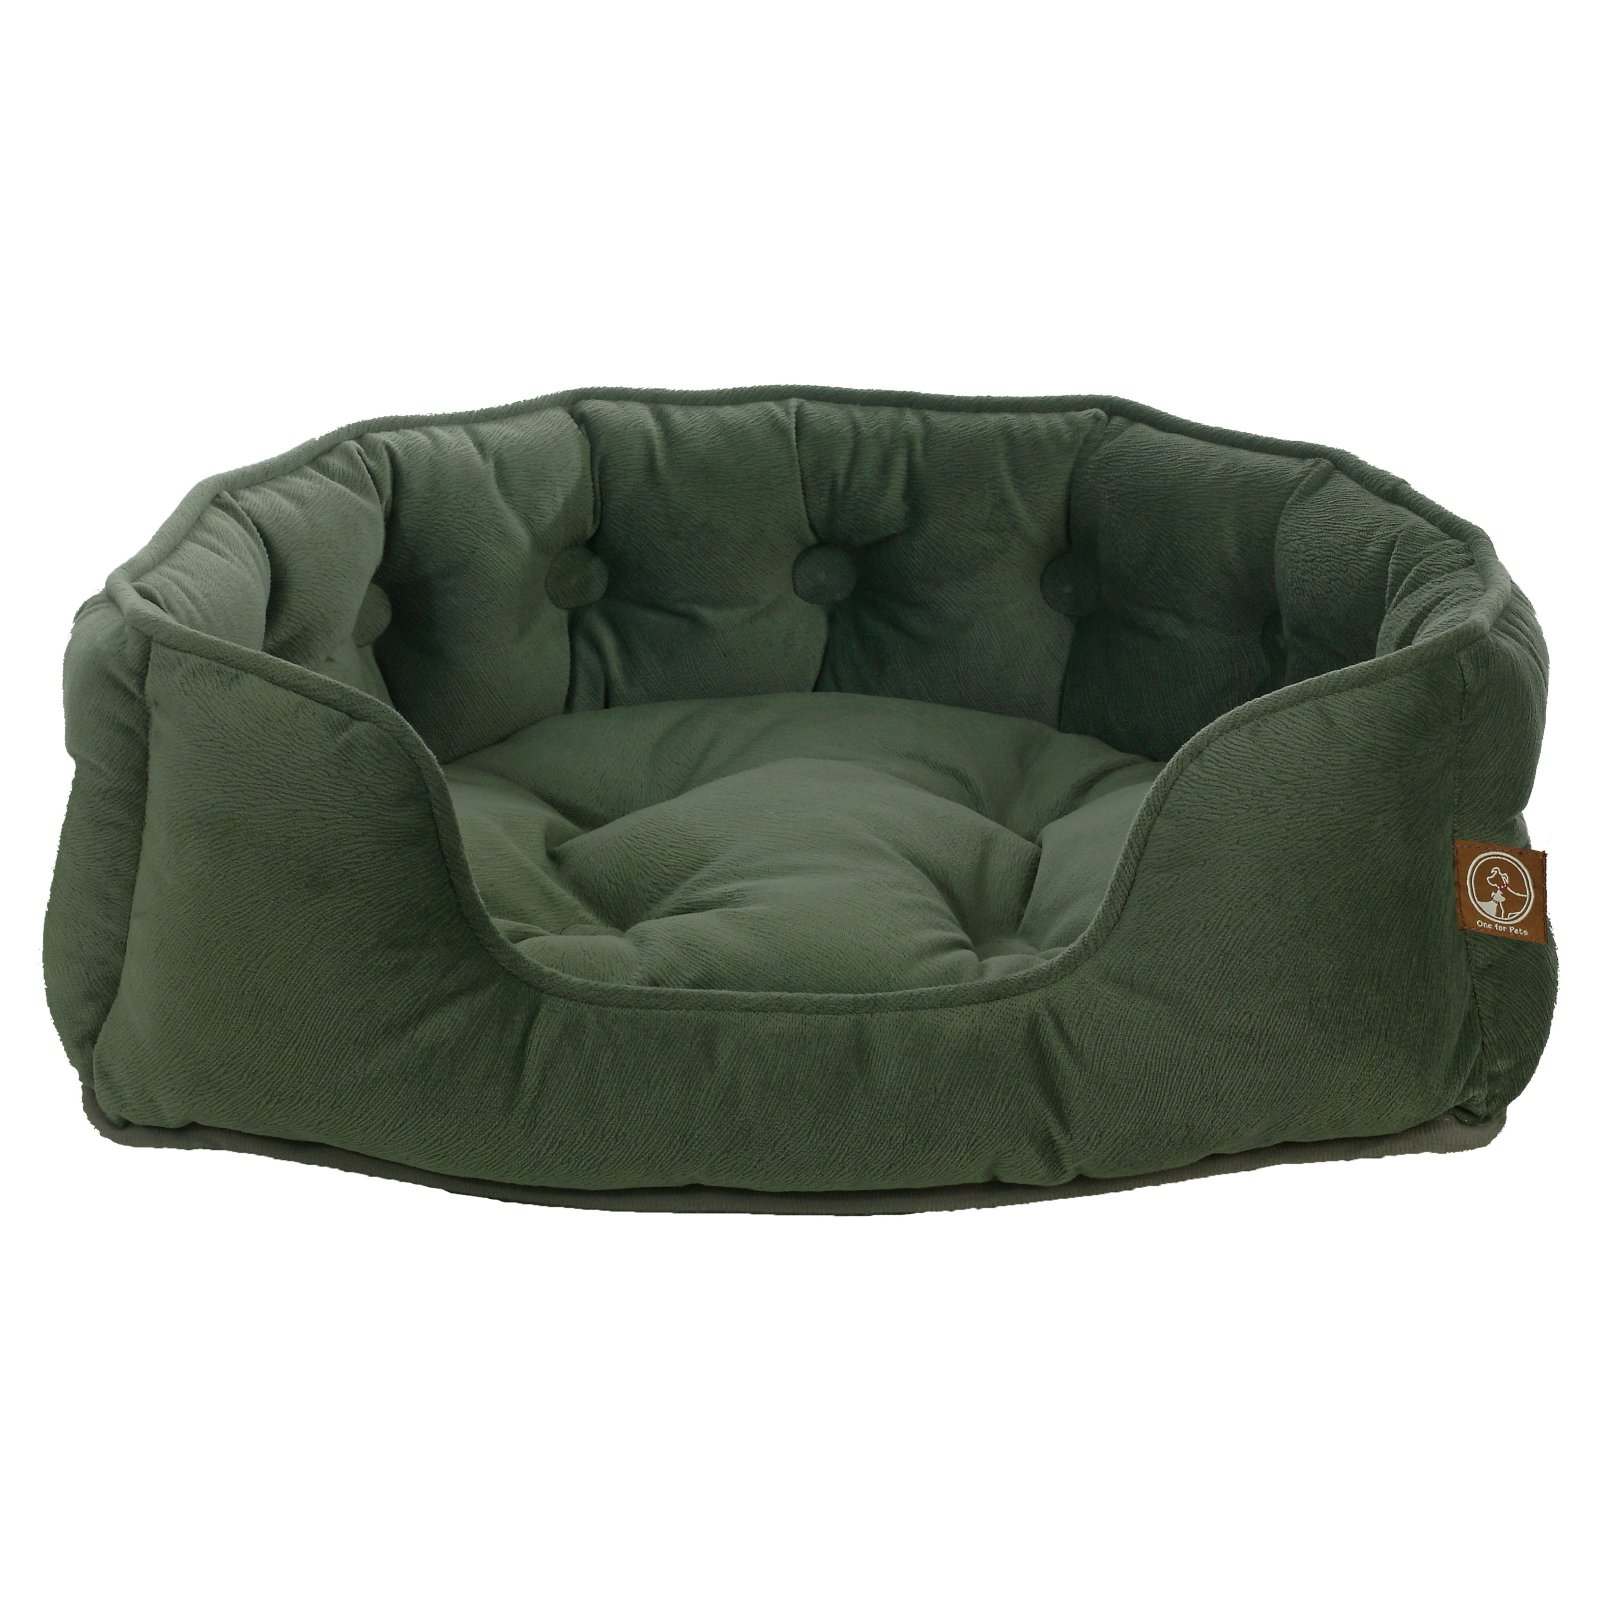 One For Pets Faux Suede Snuggle Bed